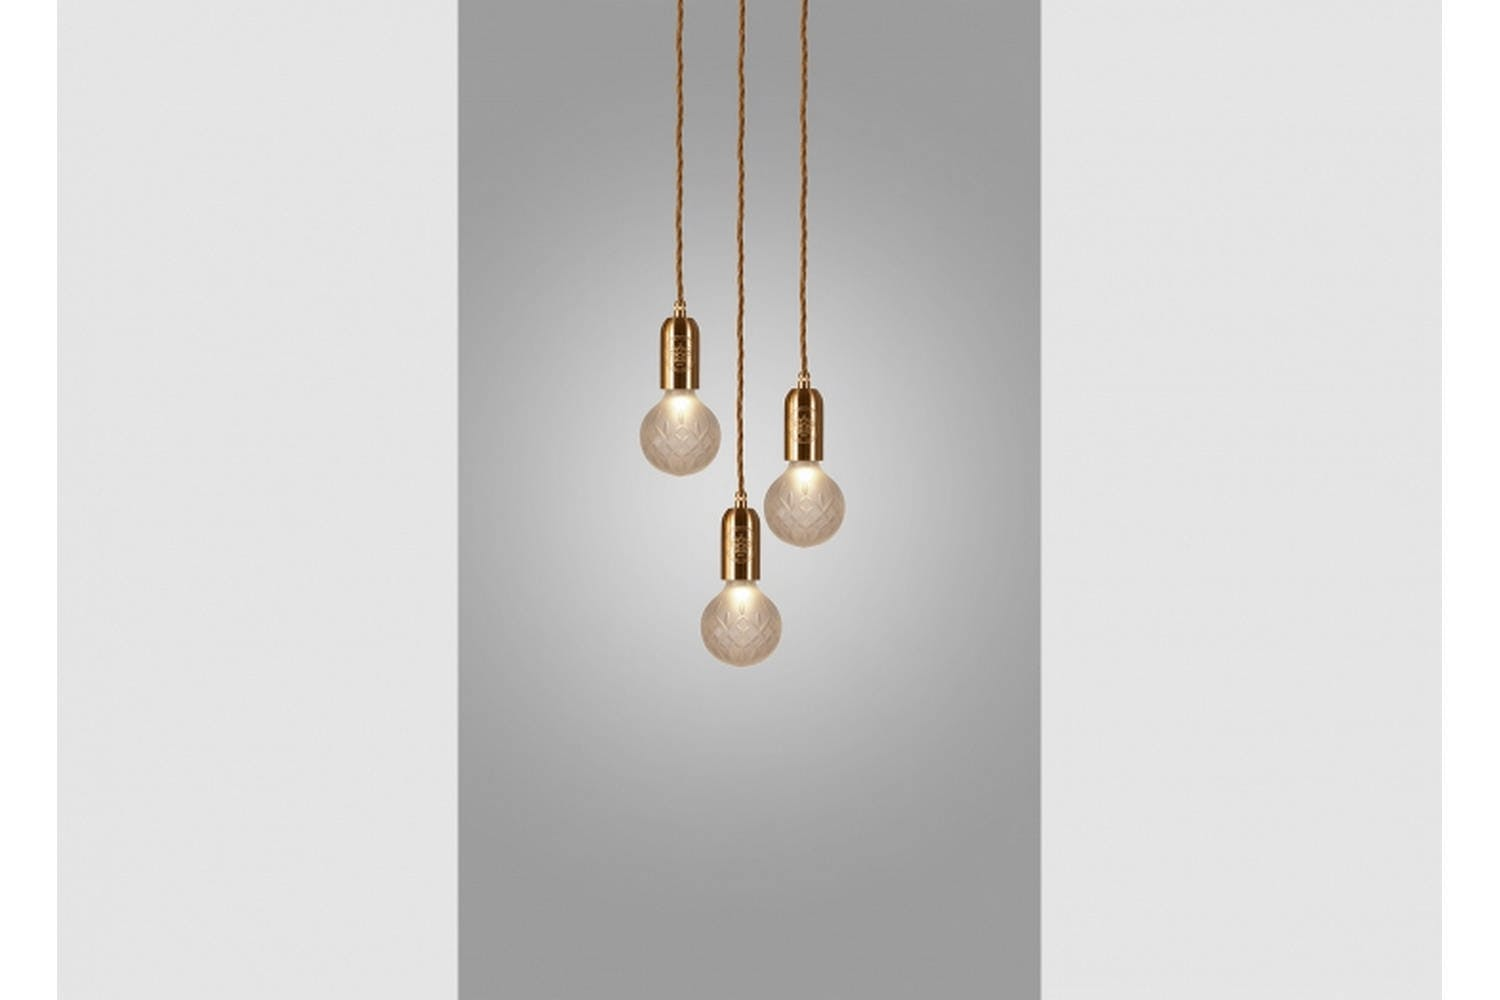 Frosted Crystal Bulb Chandelier 3 Piece Brushed Brass By Lee Broom